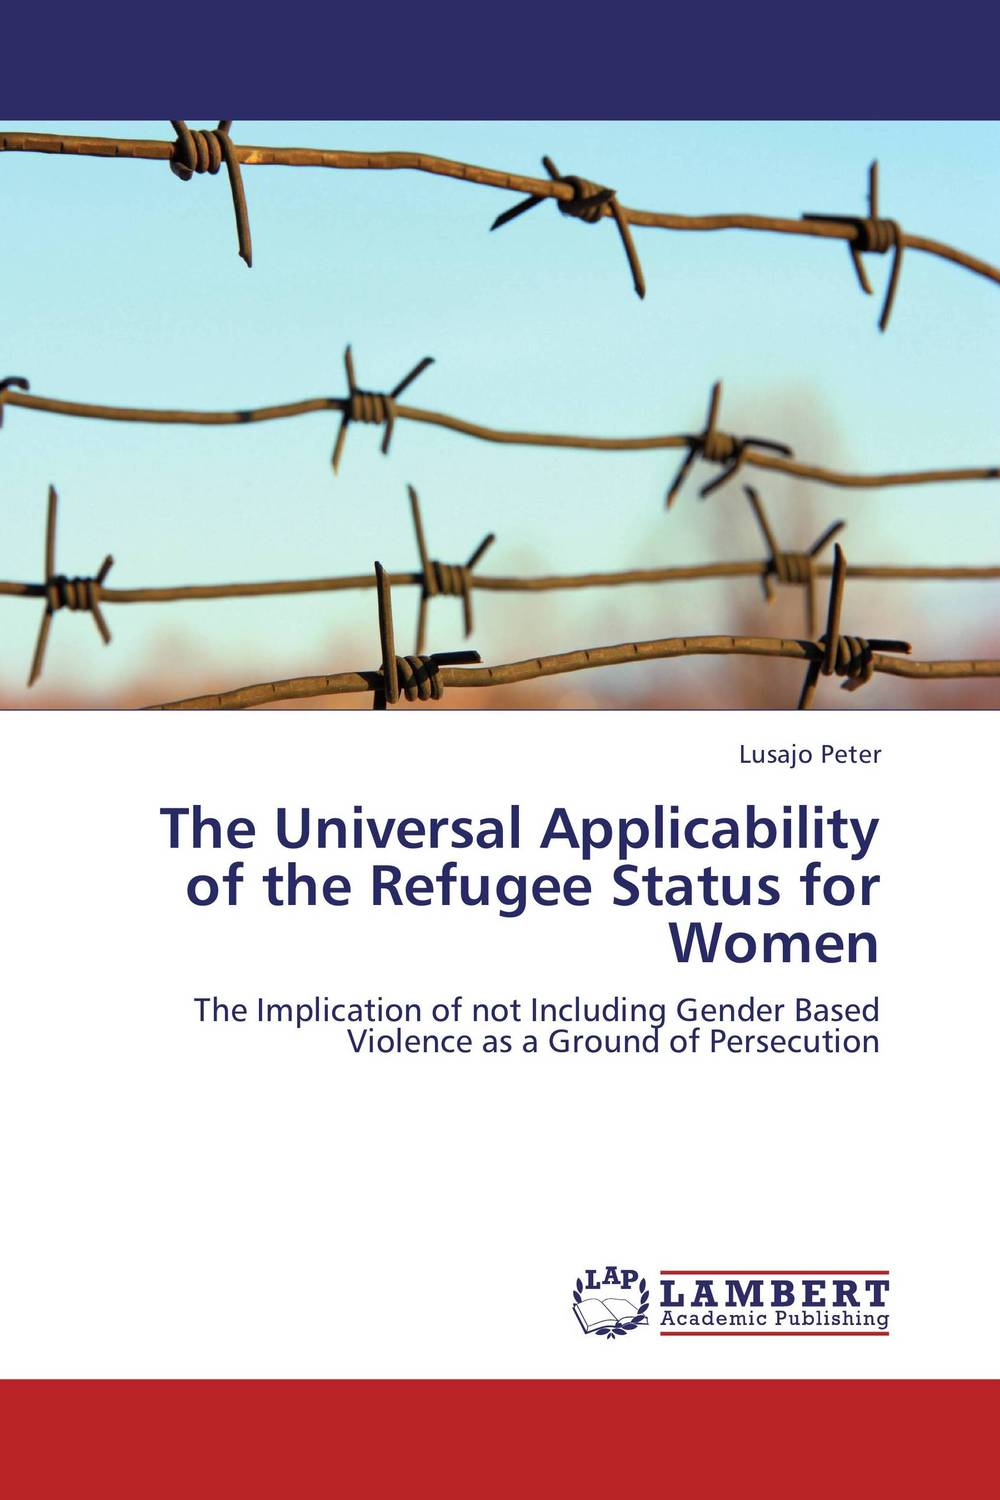 The Universal Applicability of the Refugee Status for Women